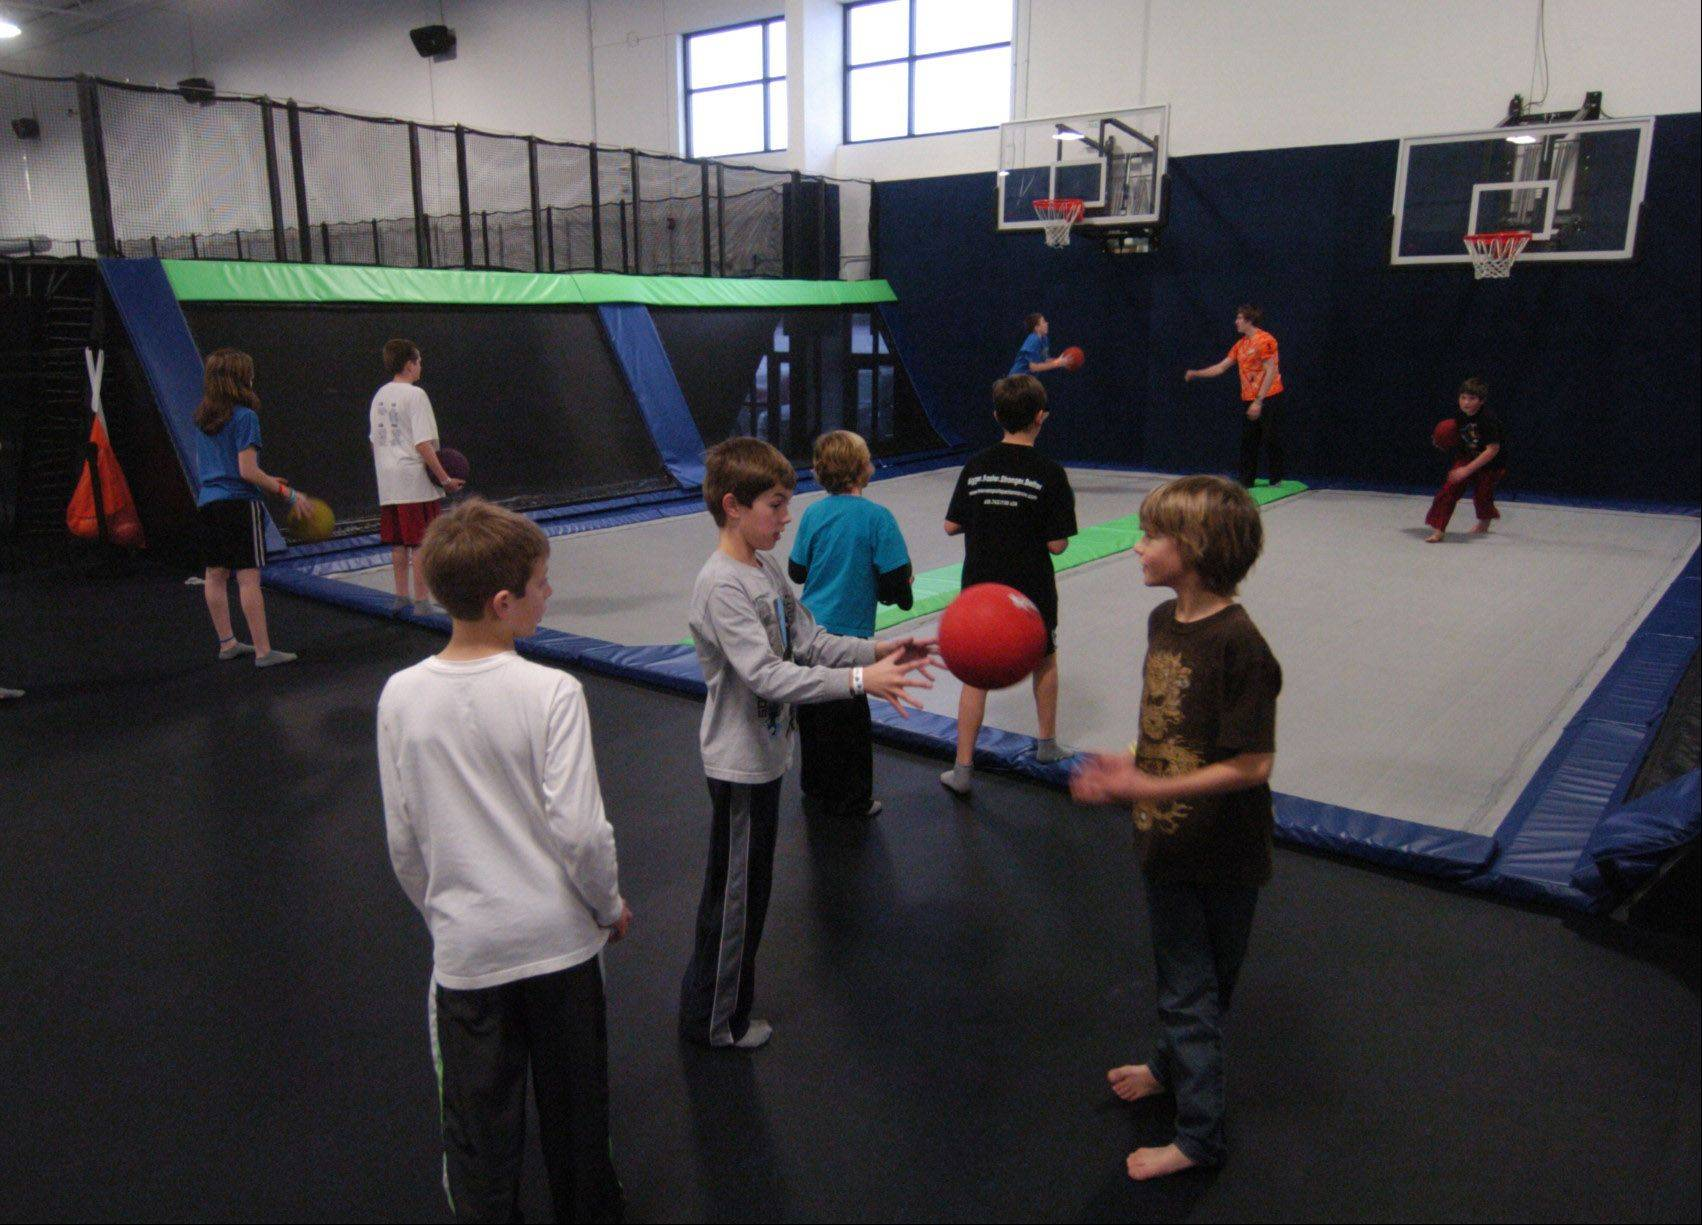 Bob Chwedyk/bchwedyk@dailyherald.comTrampoline basketball at Epic Air Trampoline Park.